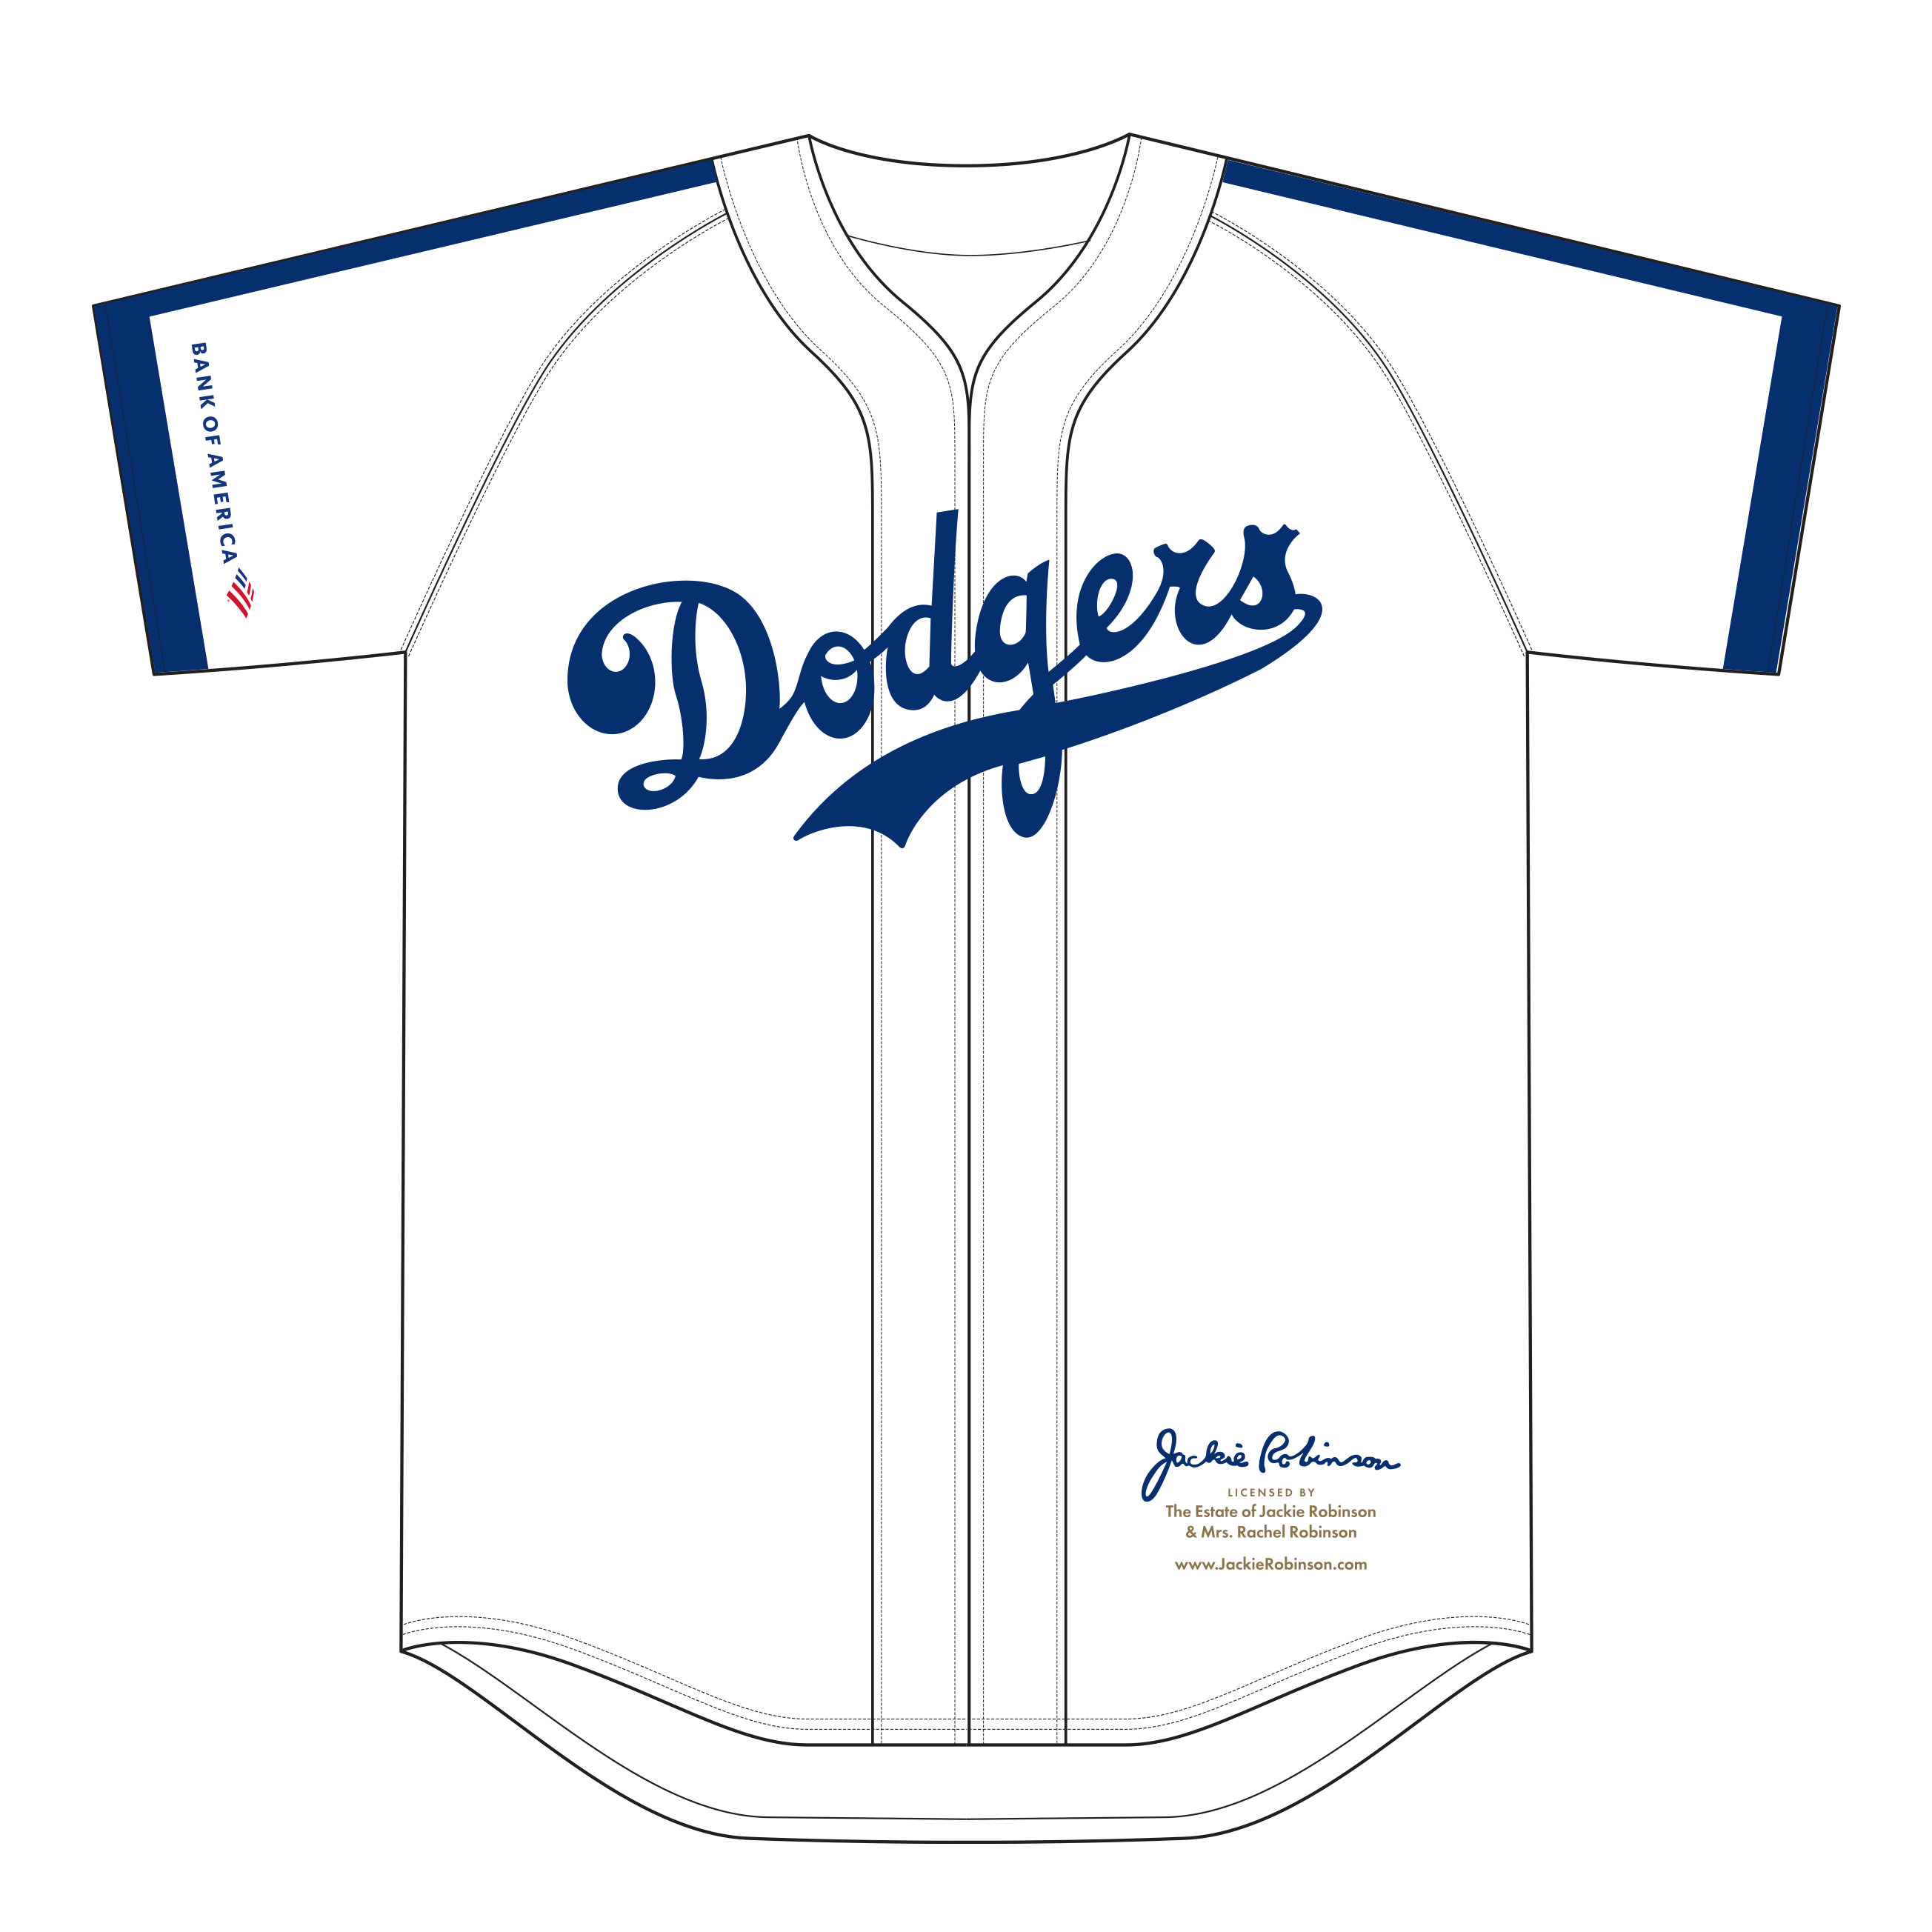 buy online 9a86a 5c923 Dodgers celebrate Jackie Robinson and his 100th birthday ...